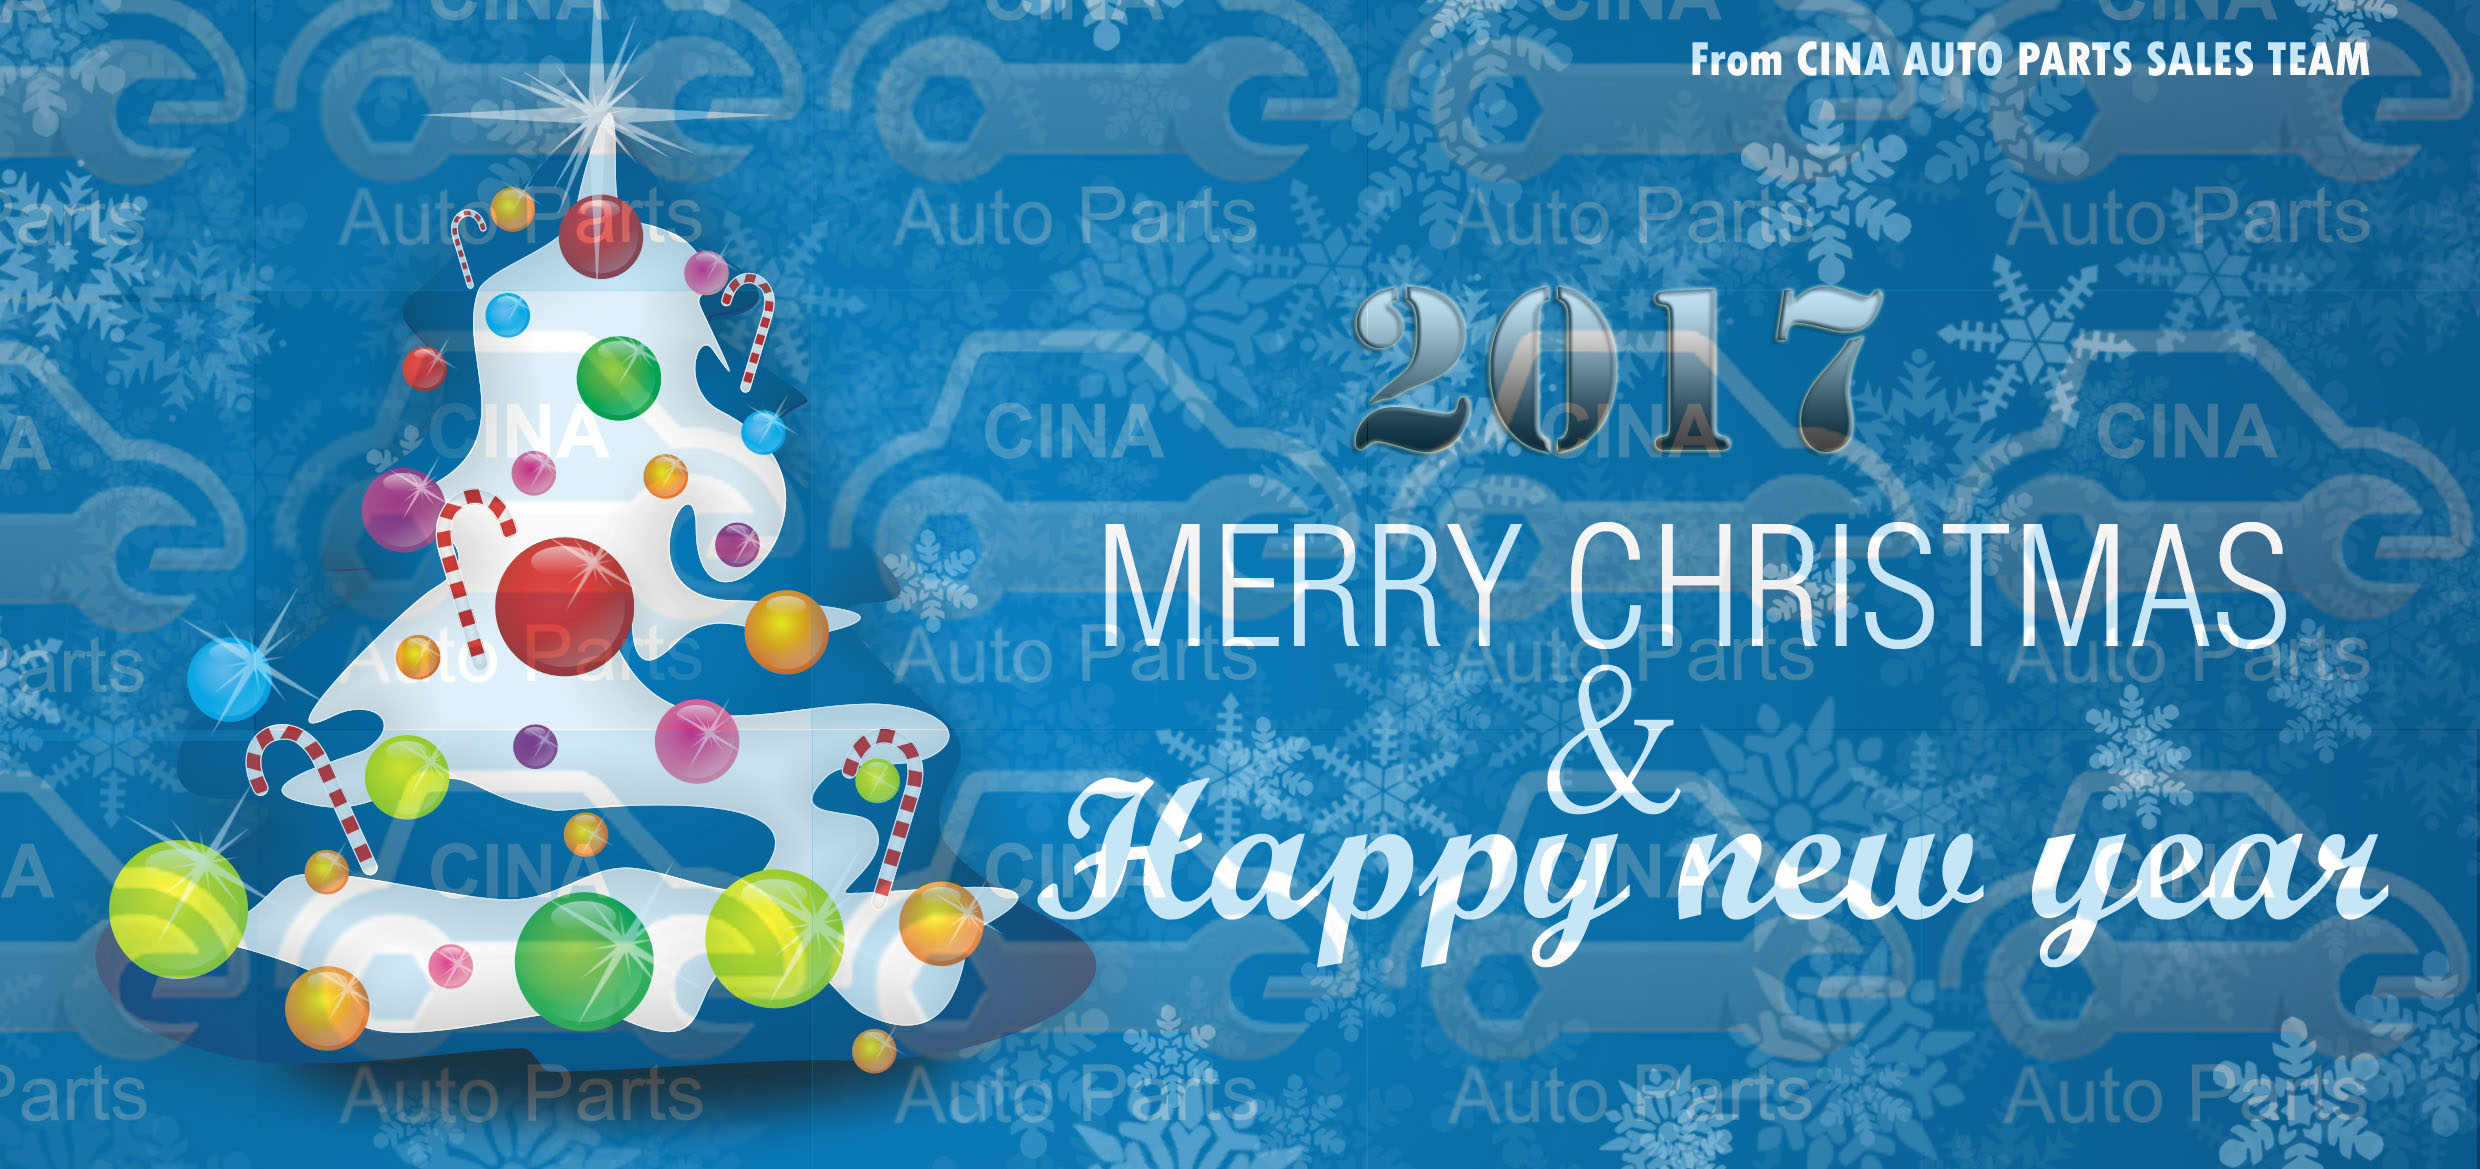 2017 HAPPY NEW YEAR - Merry Christmas and 2017 Happy New Year for all Friends